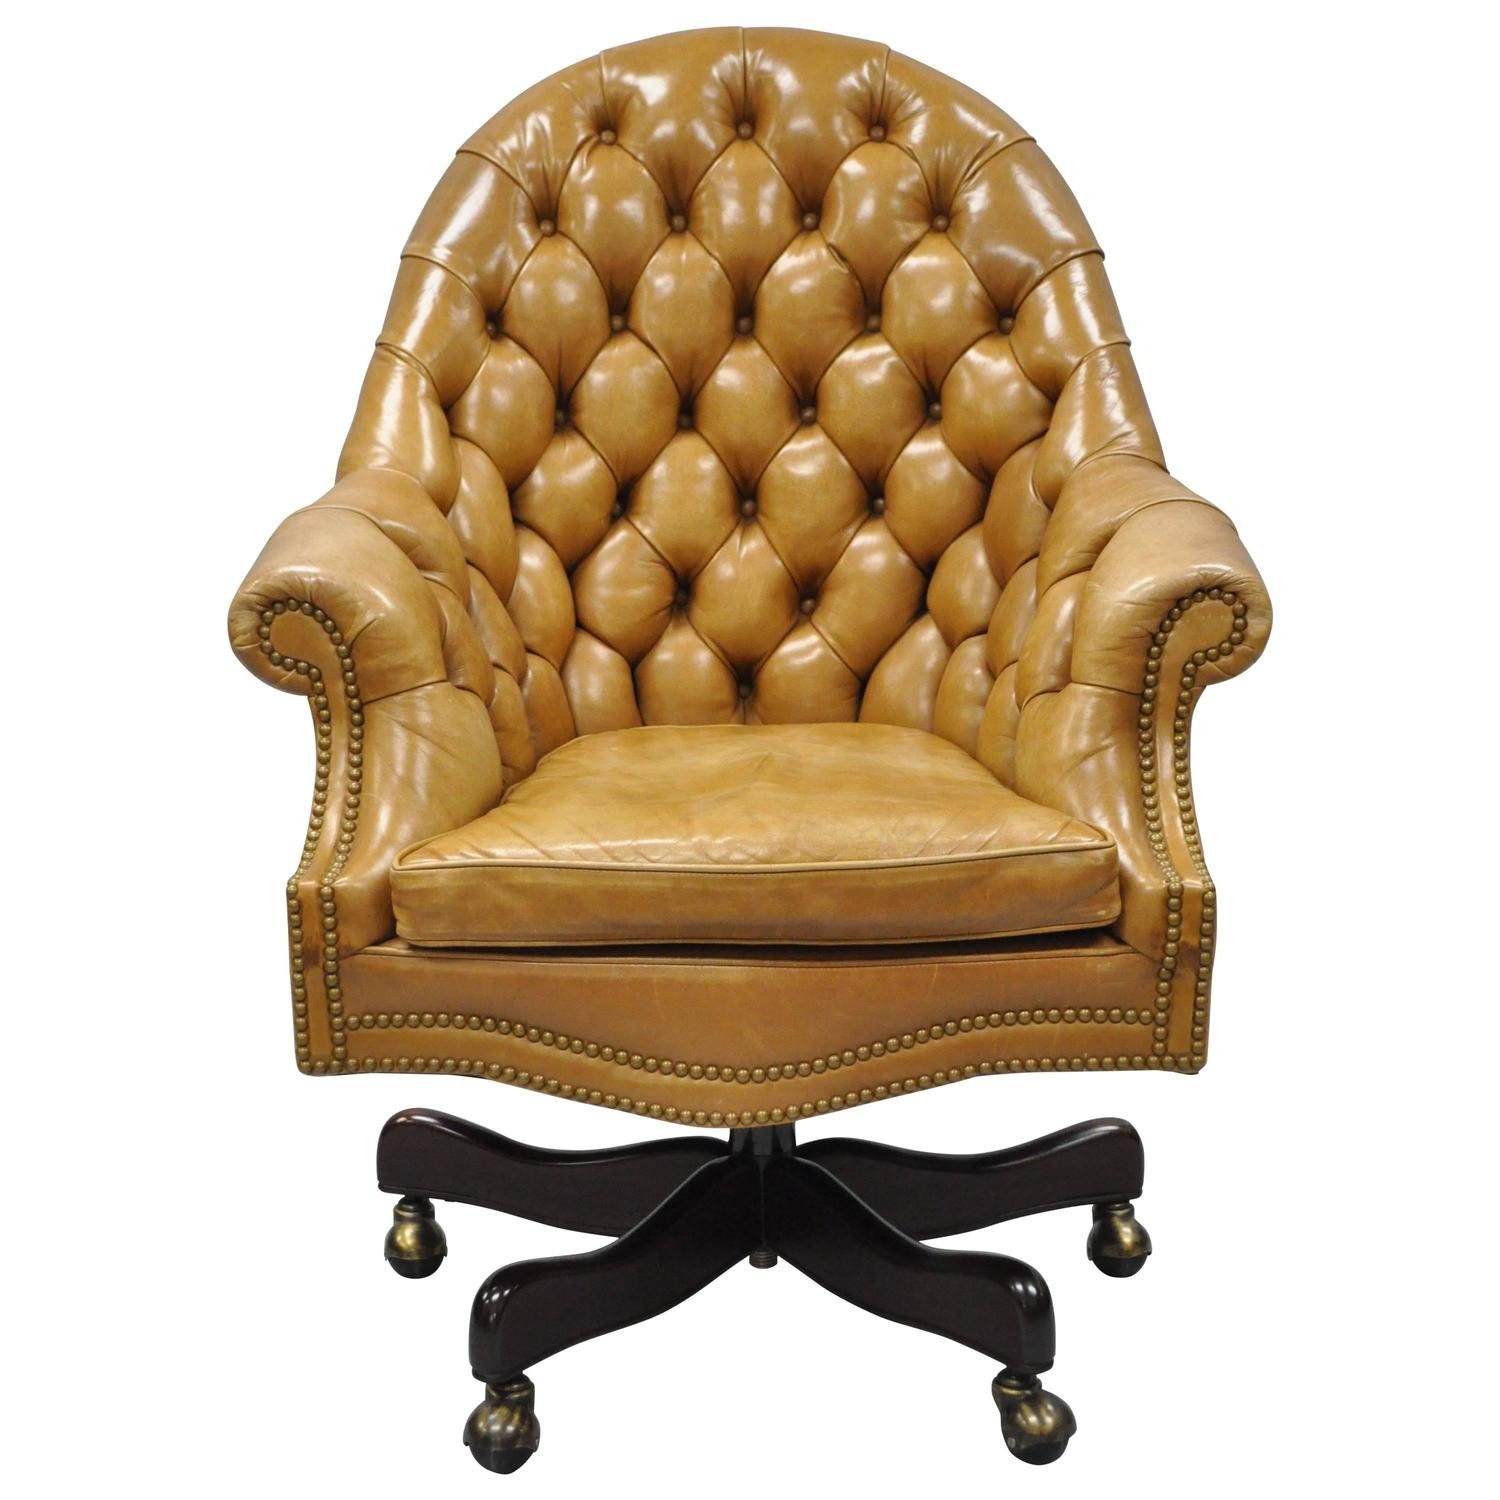 Chesterfield office chair - 20th Century Cabot Wrenn Tan Leather English Chesterfield Office Desk Chair